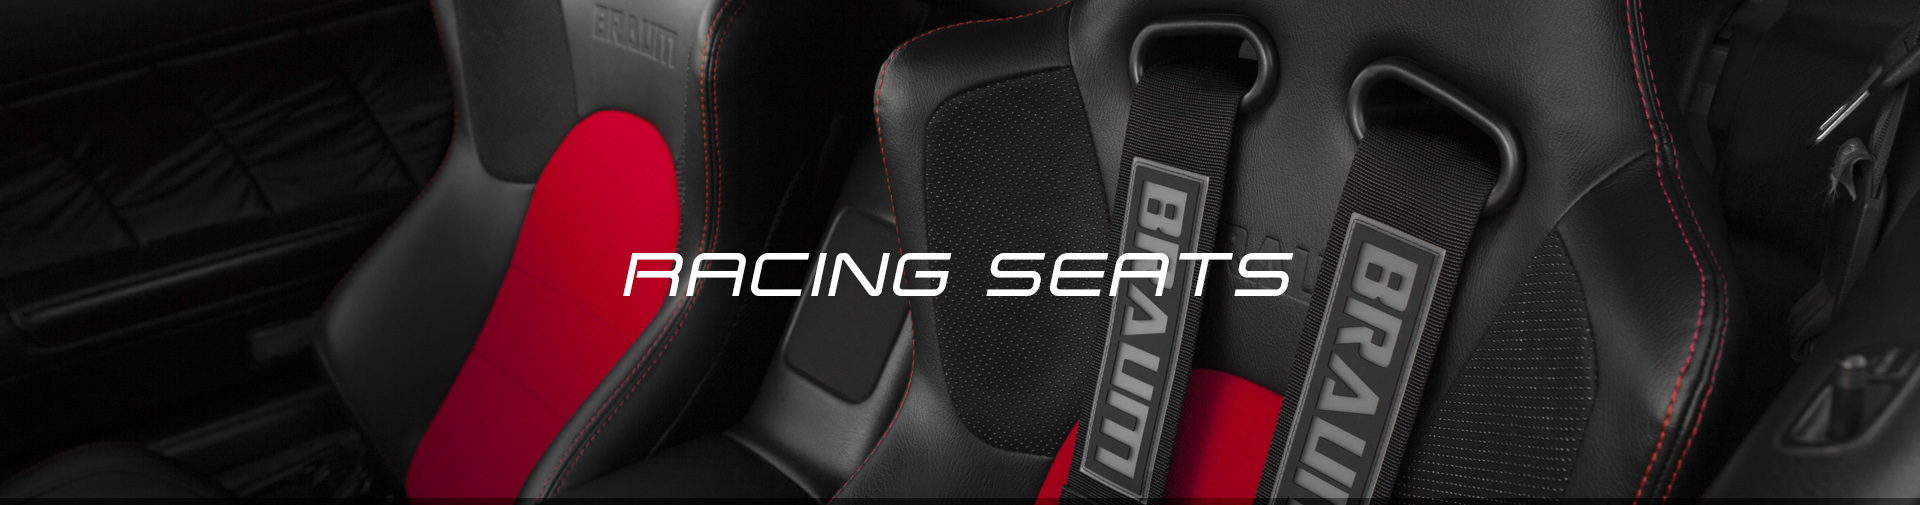 BRAUM Universal Racing Seats - Header